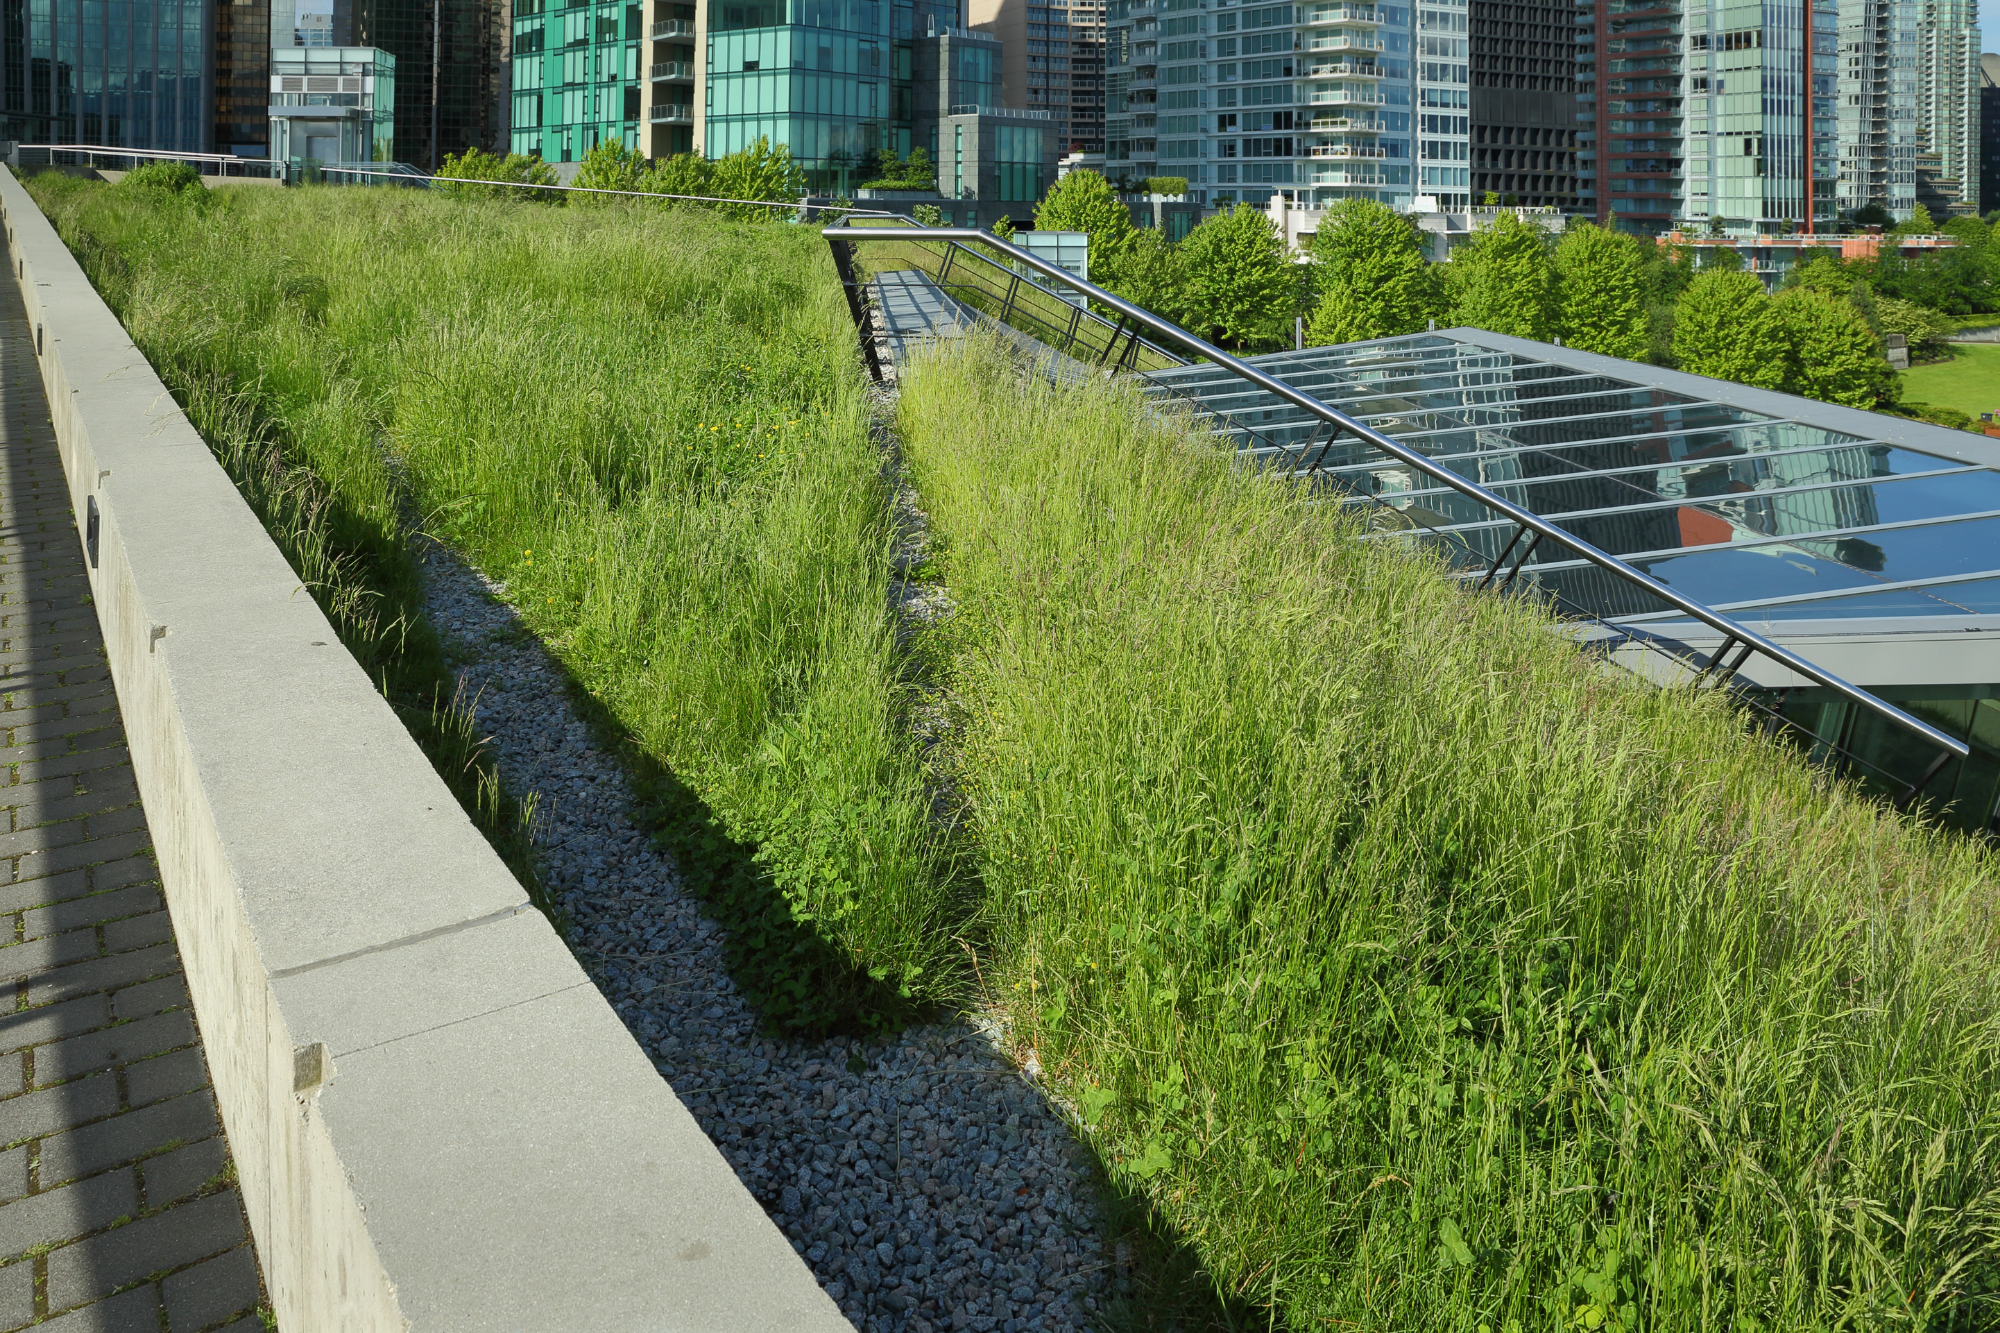 Green Roof On An Urban Commercial Building